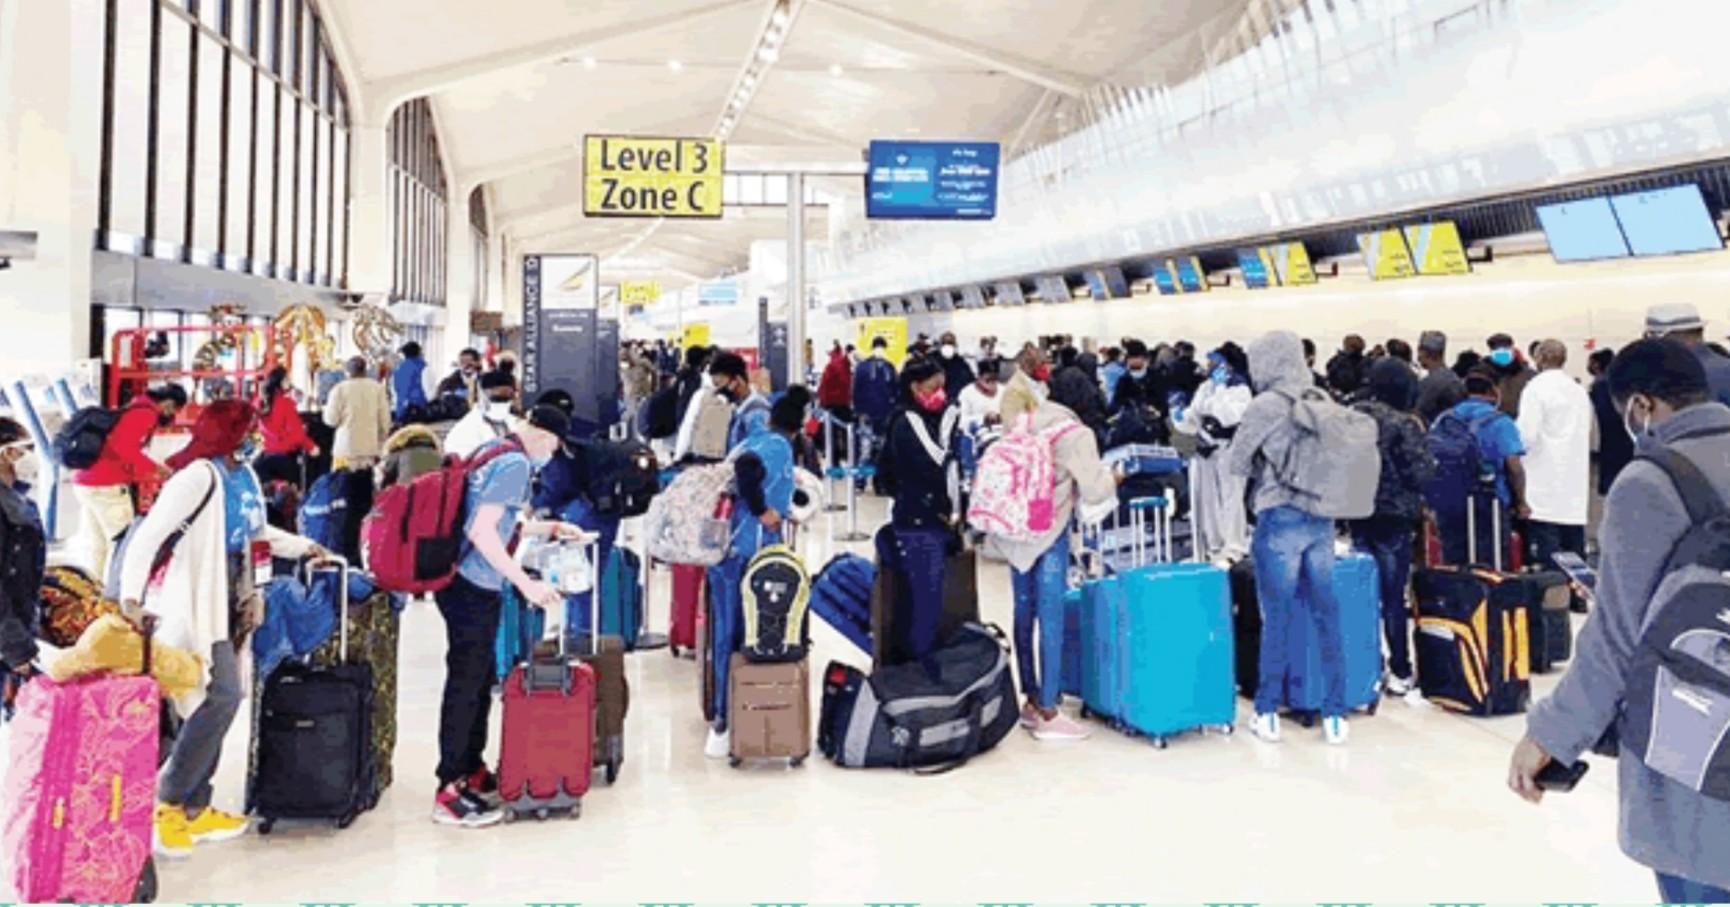 87 stranded Nigerians arrive from Sudan